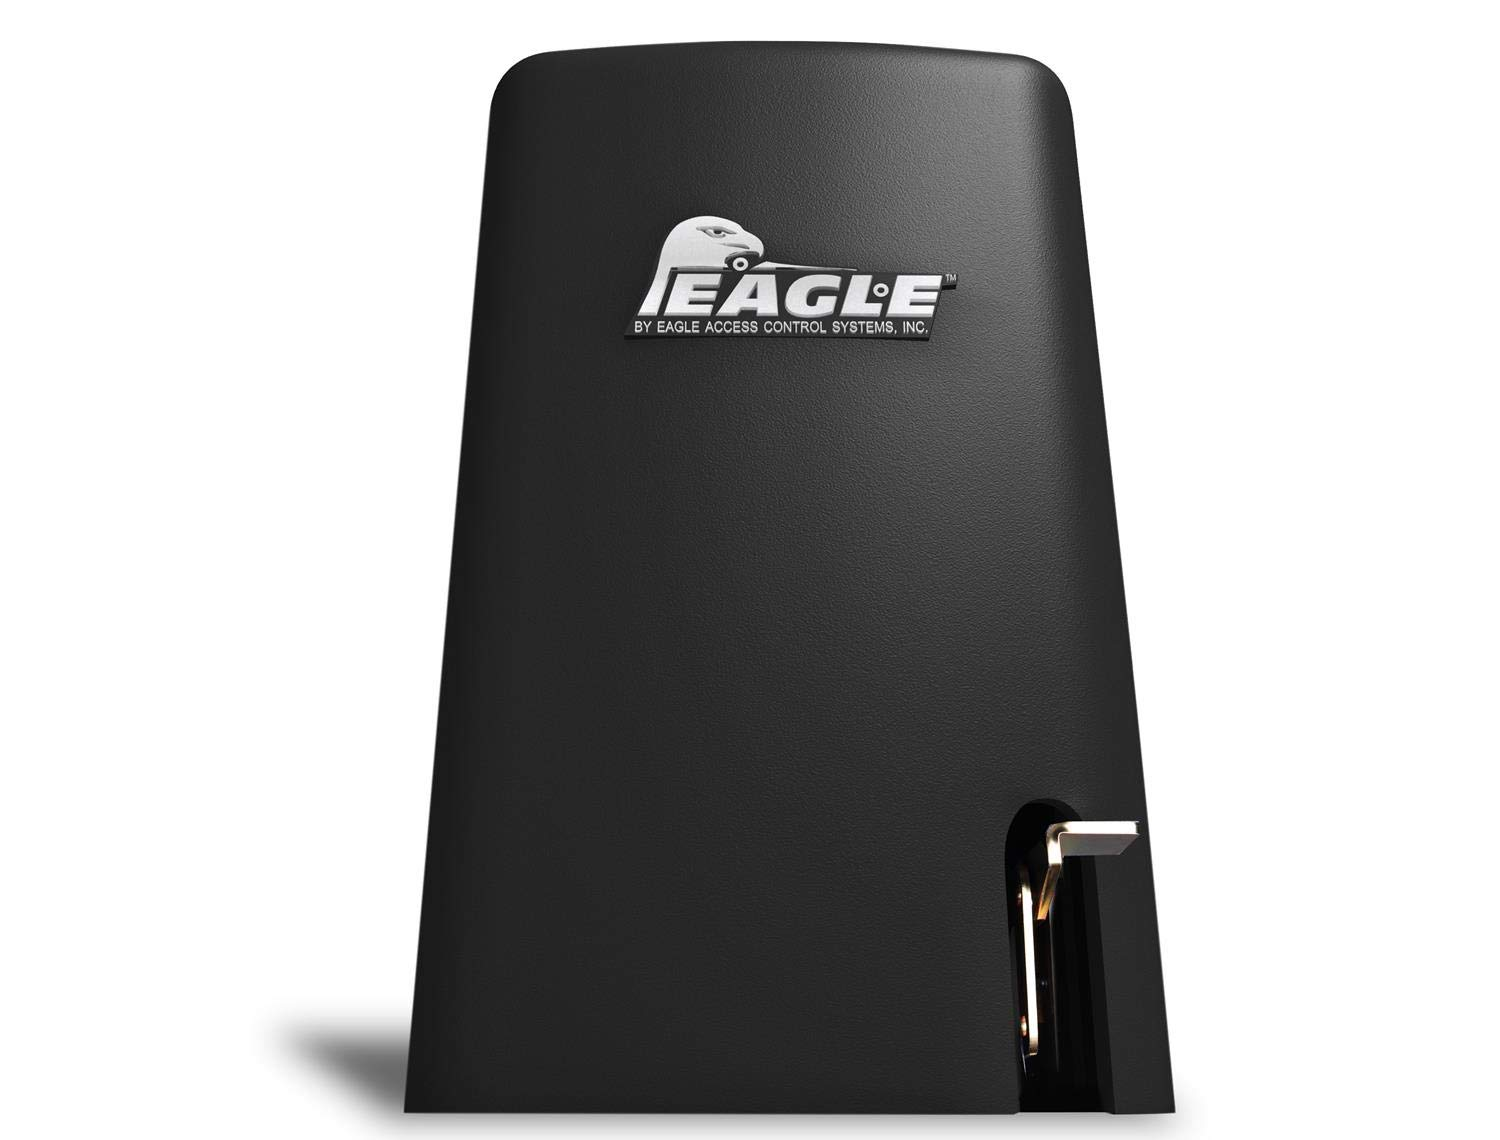 Eagle-1000 FR 1/2 HP Slide Gate Operator Motor for Residential Access Control Entrance - up to 27' ft 600lbs for Home or Light Commercial Businesses with 2 Remotes, Receiver, and Photo Eye Monitor